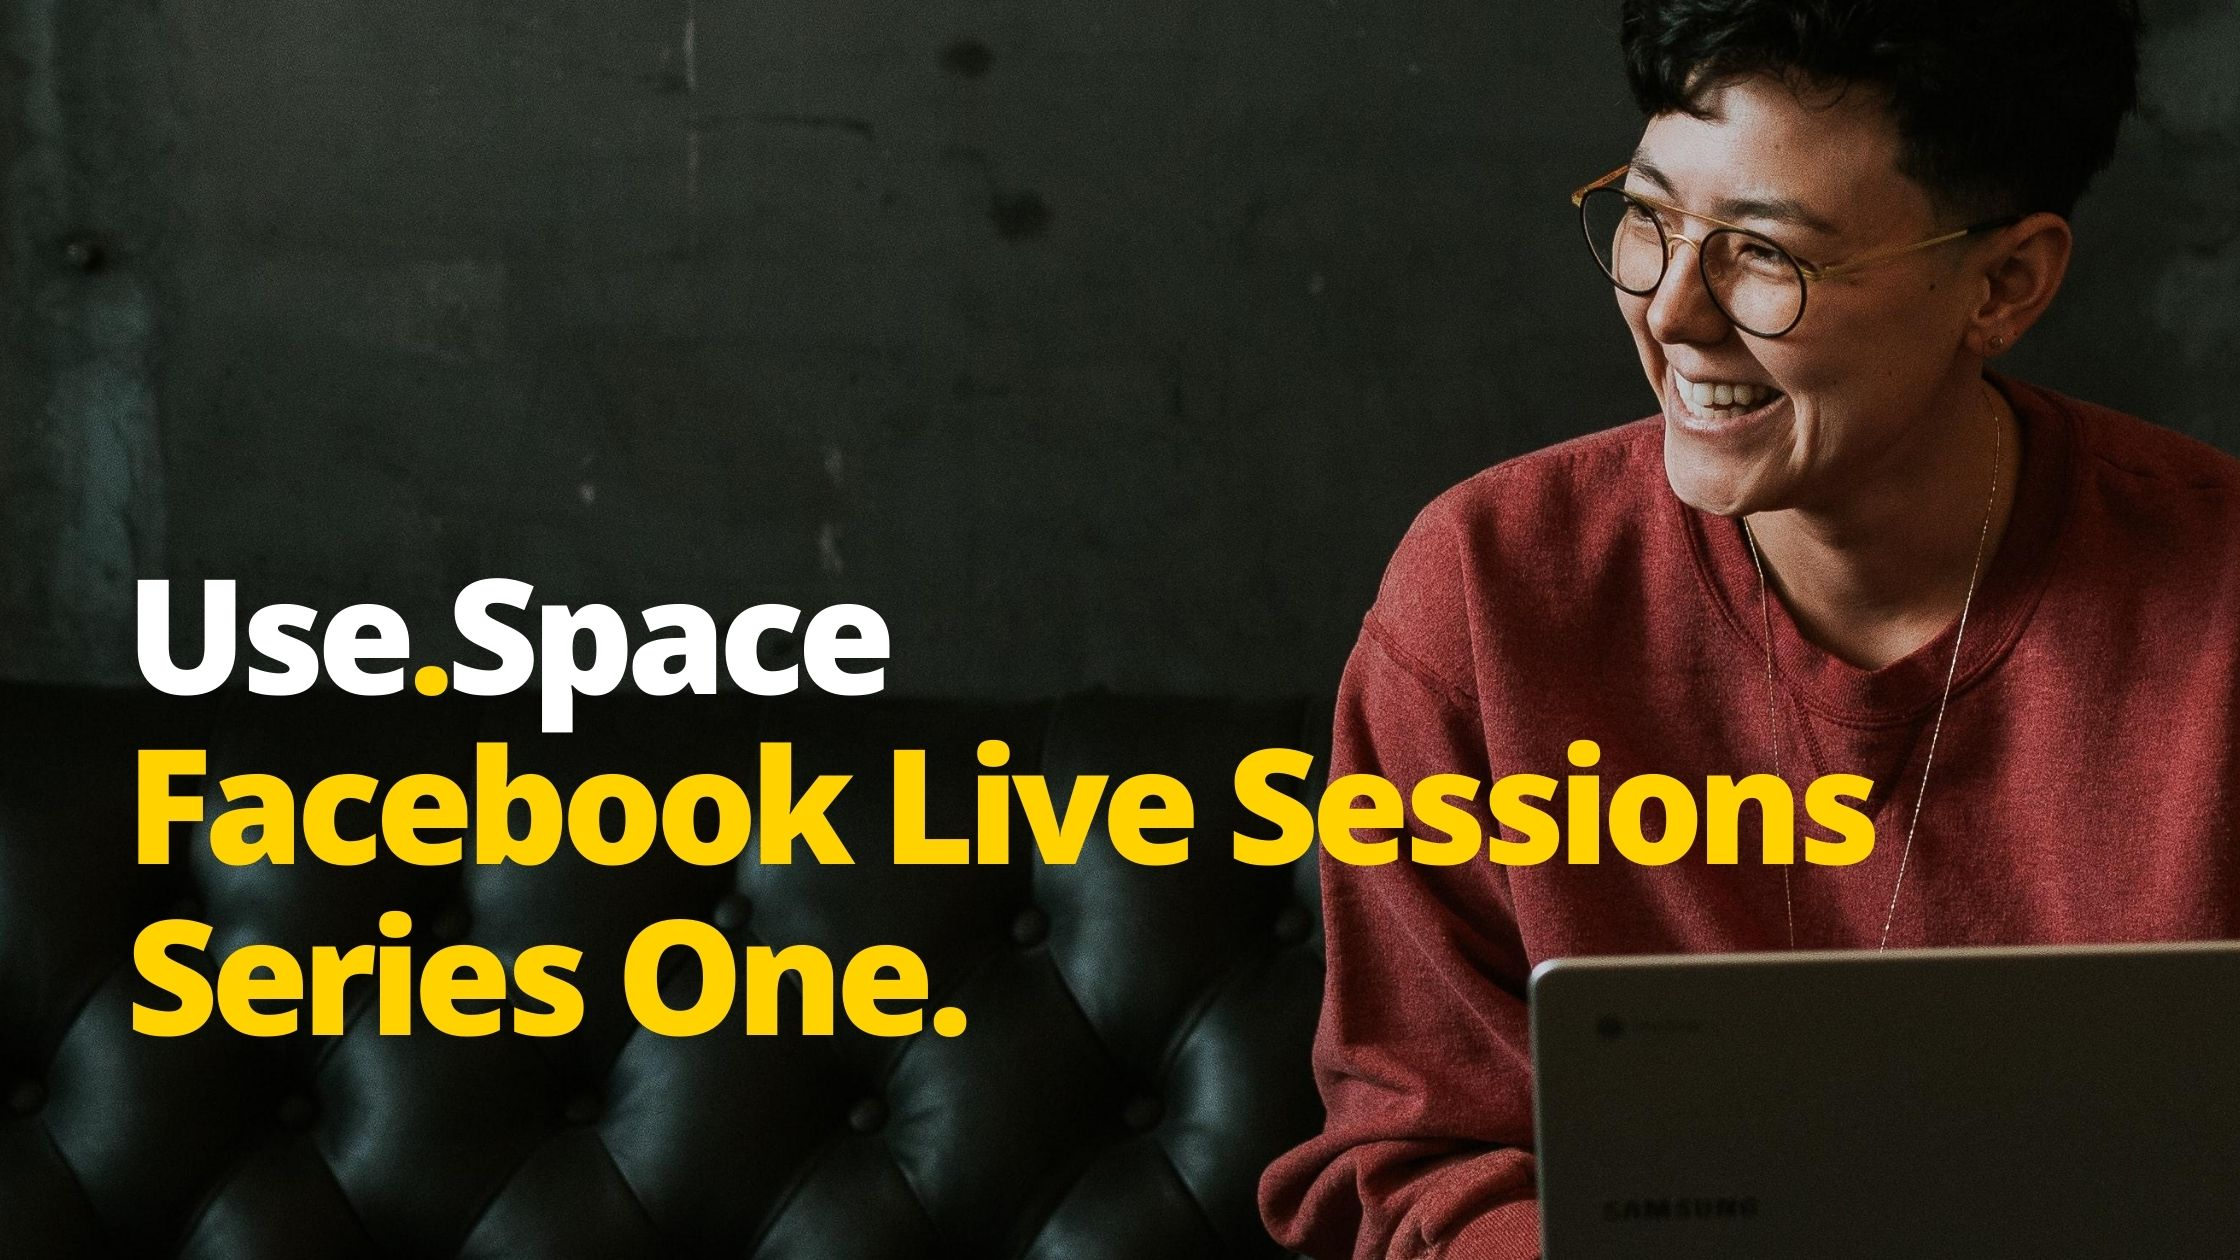 Use.Space Facebook Live